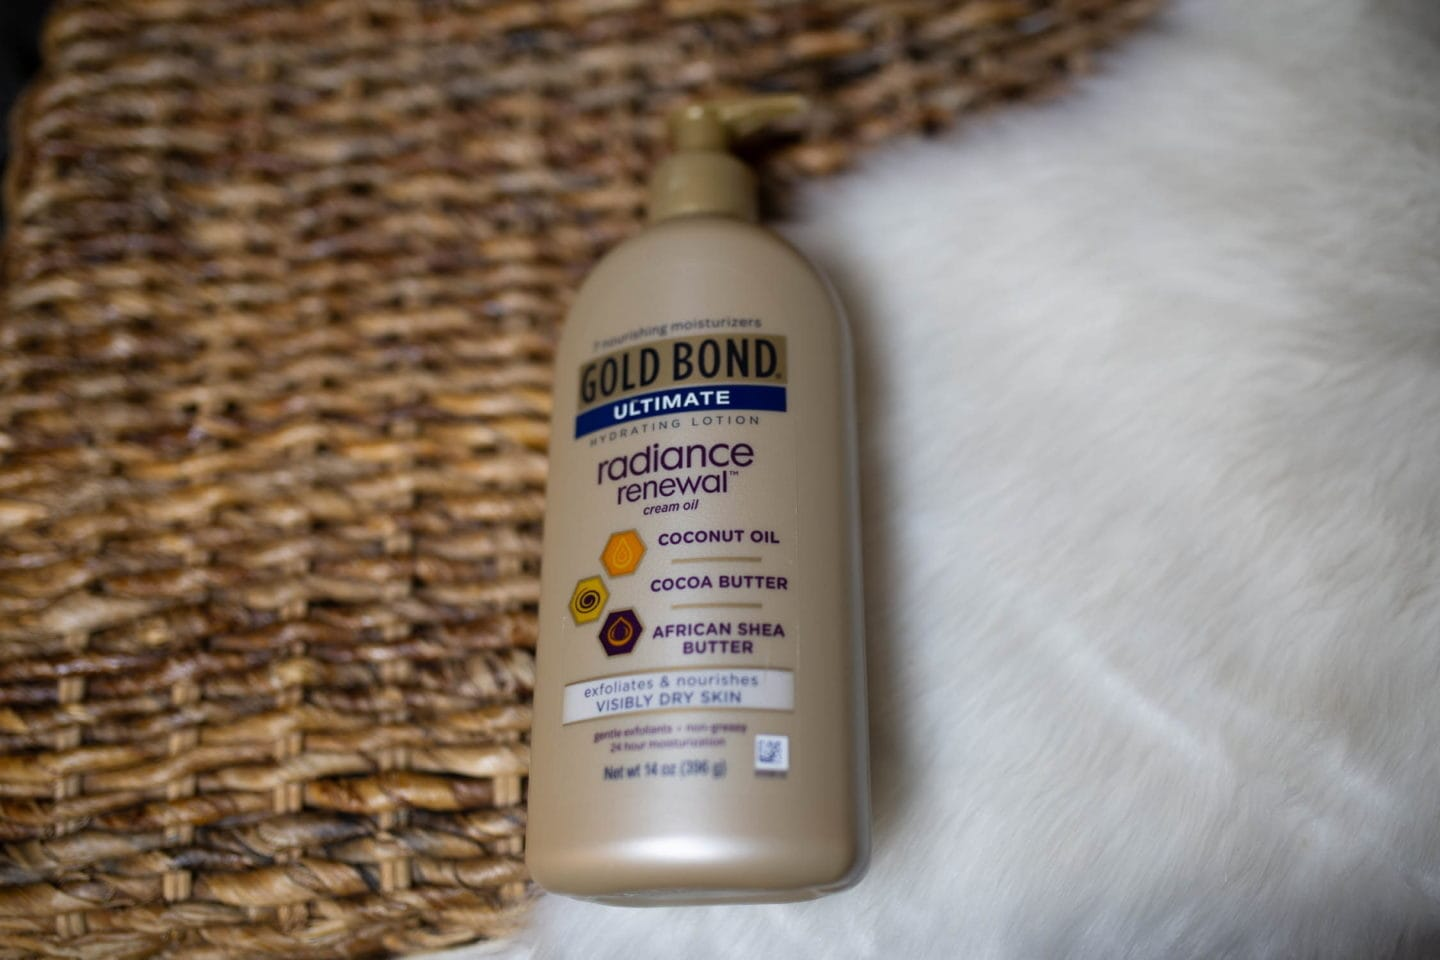 #moisturizer #moisturizerforoilyskin Gold Bond Ultimate review | Is Gold Bond a great skincare product that will keep you moisturized? I bought the entire collection and share my thoughts in this review. Keep reading to get the scoop on if this body lotion and cream are worth the hype or a total waste of money. #coconutoilskincare